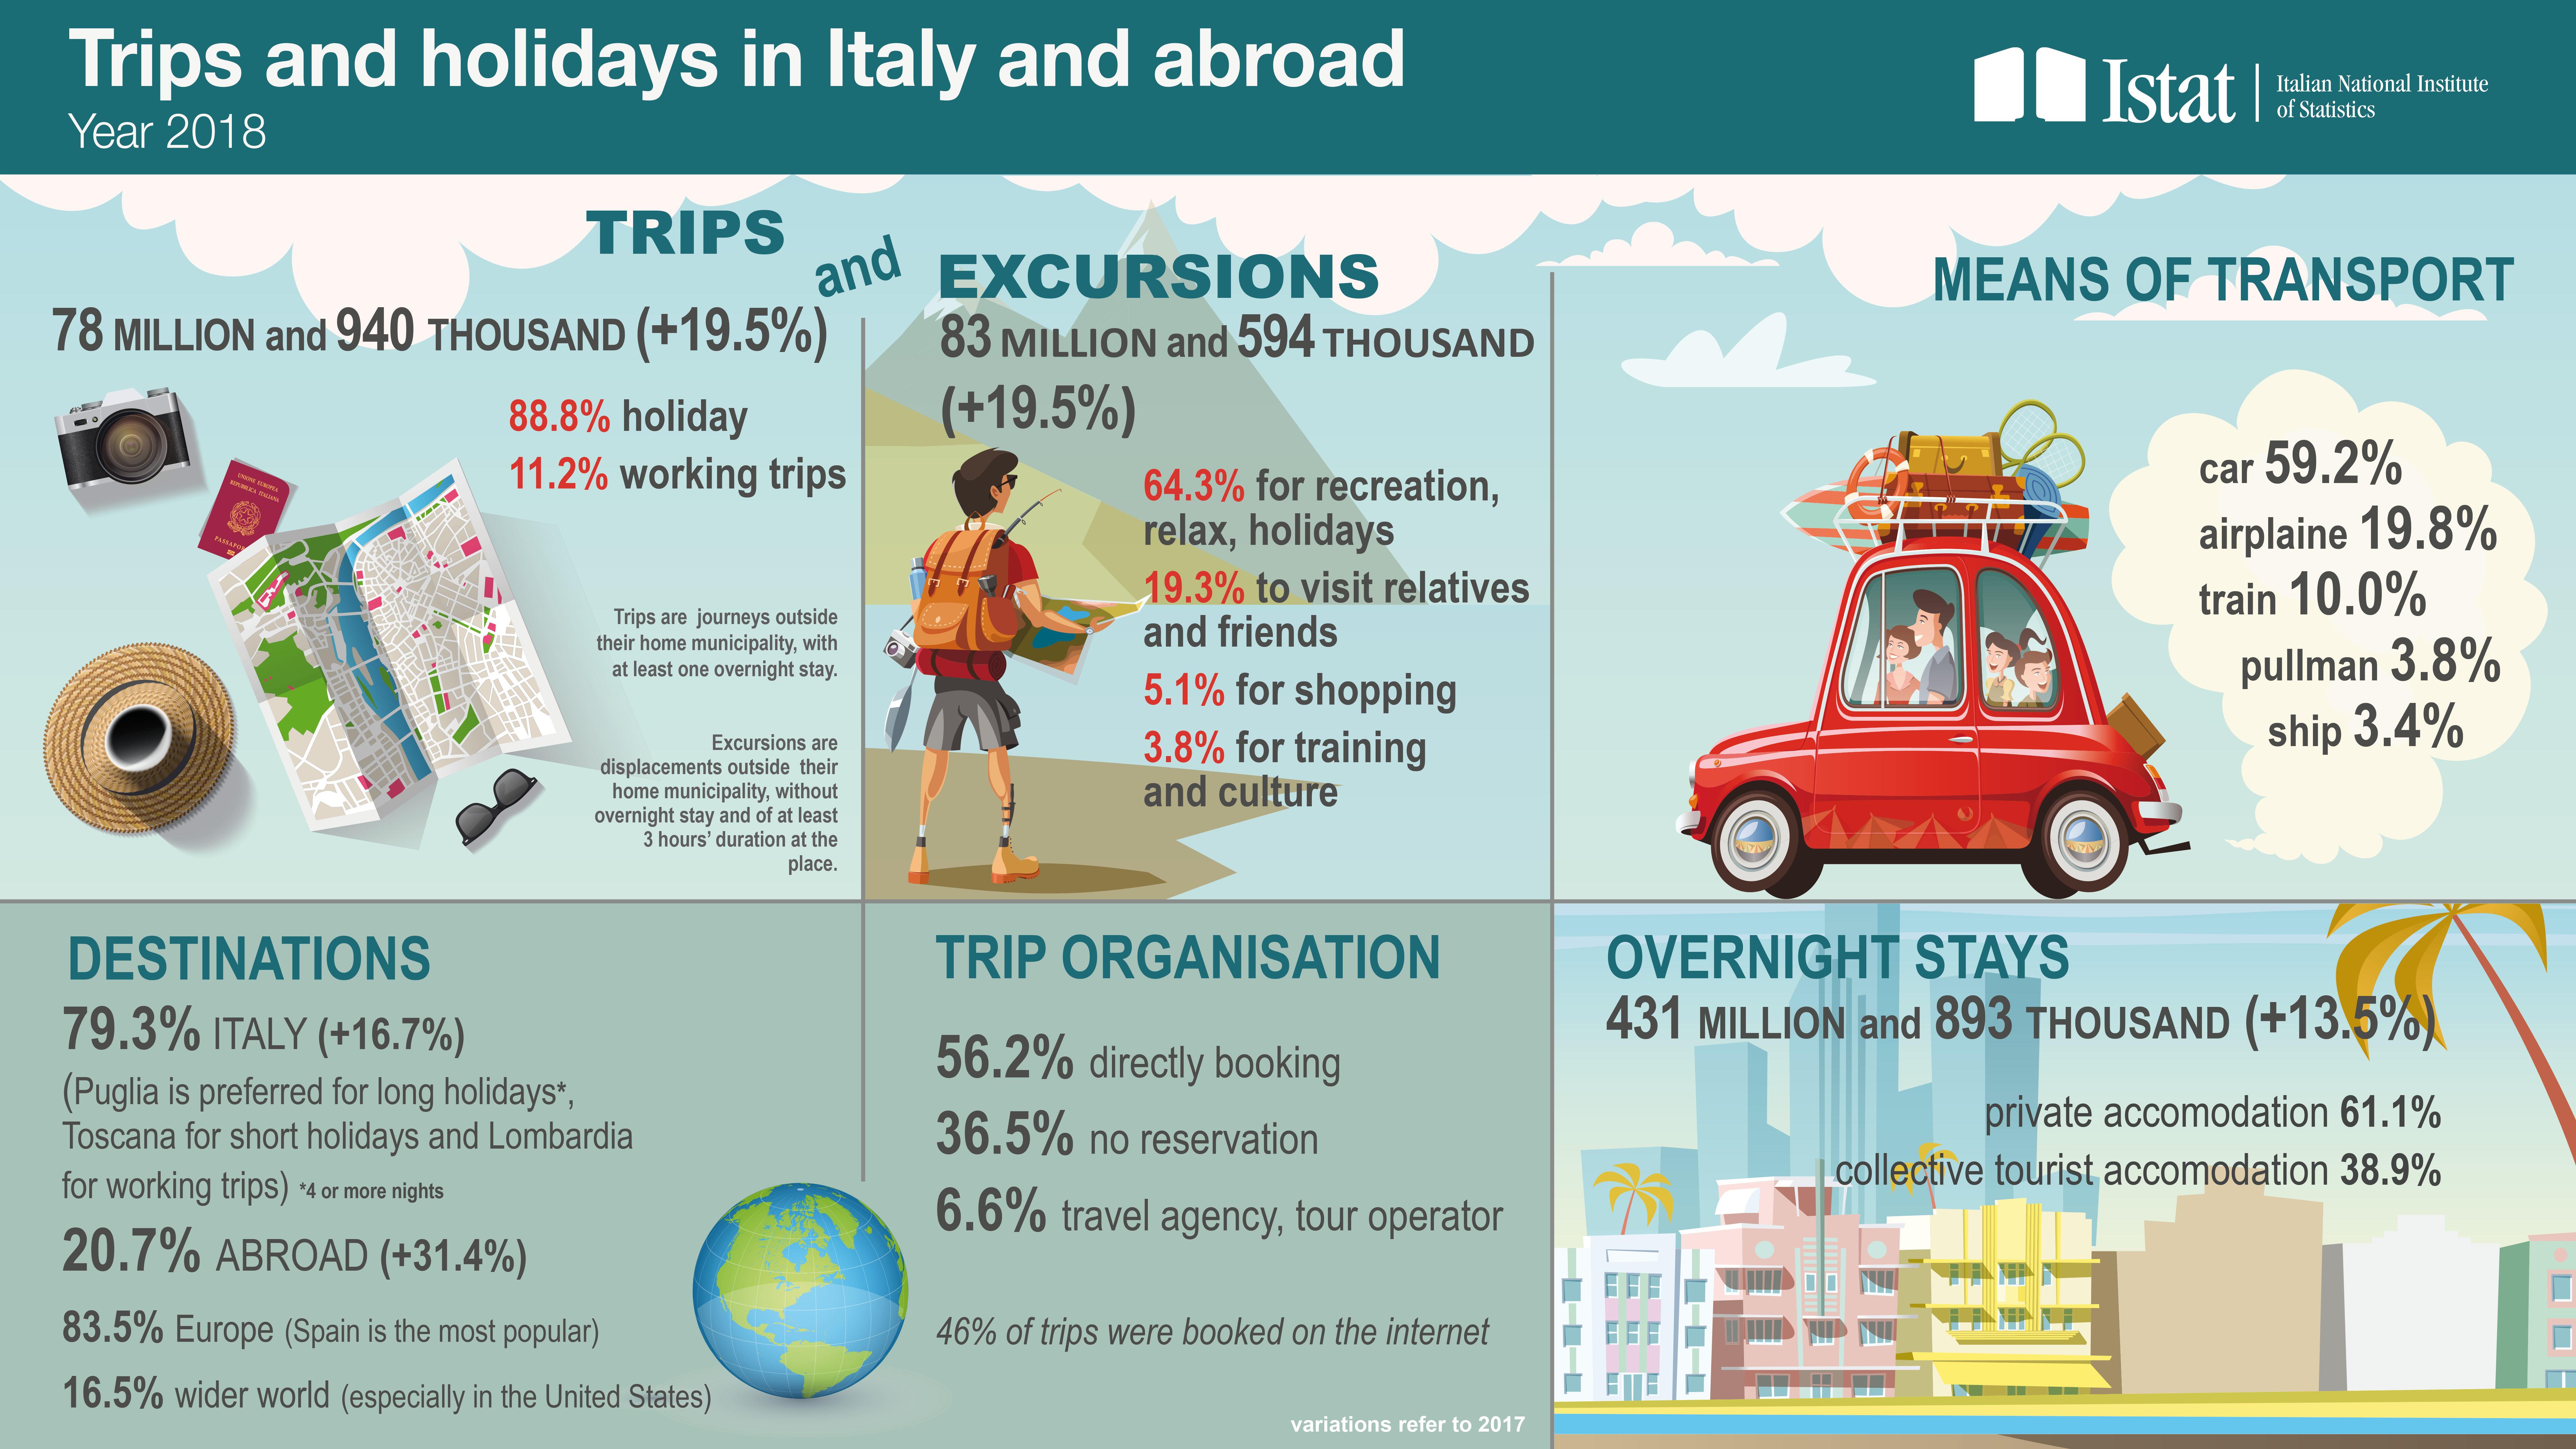 Infographic on trips and holidays in Italy and abroad in 2018